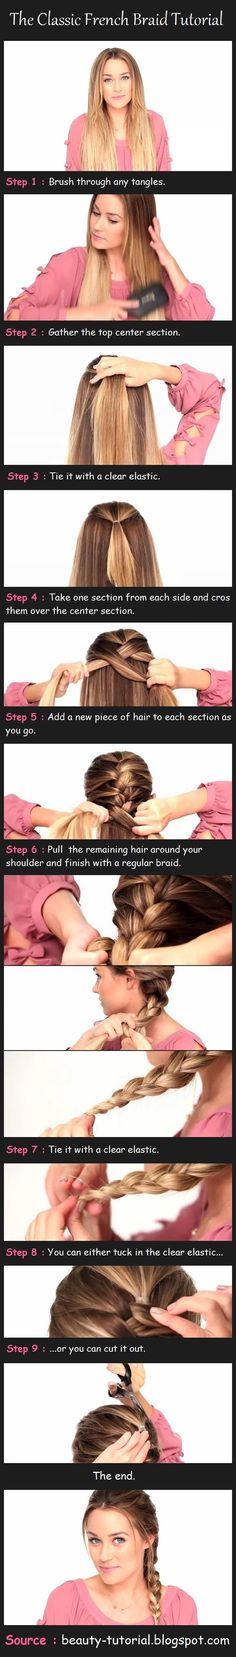 French Braid - never though of doing a small ponytail to start with!!!